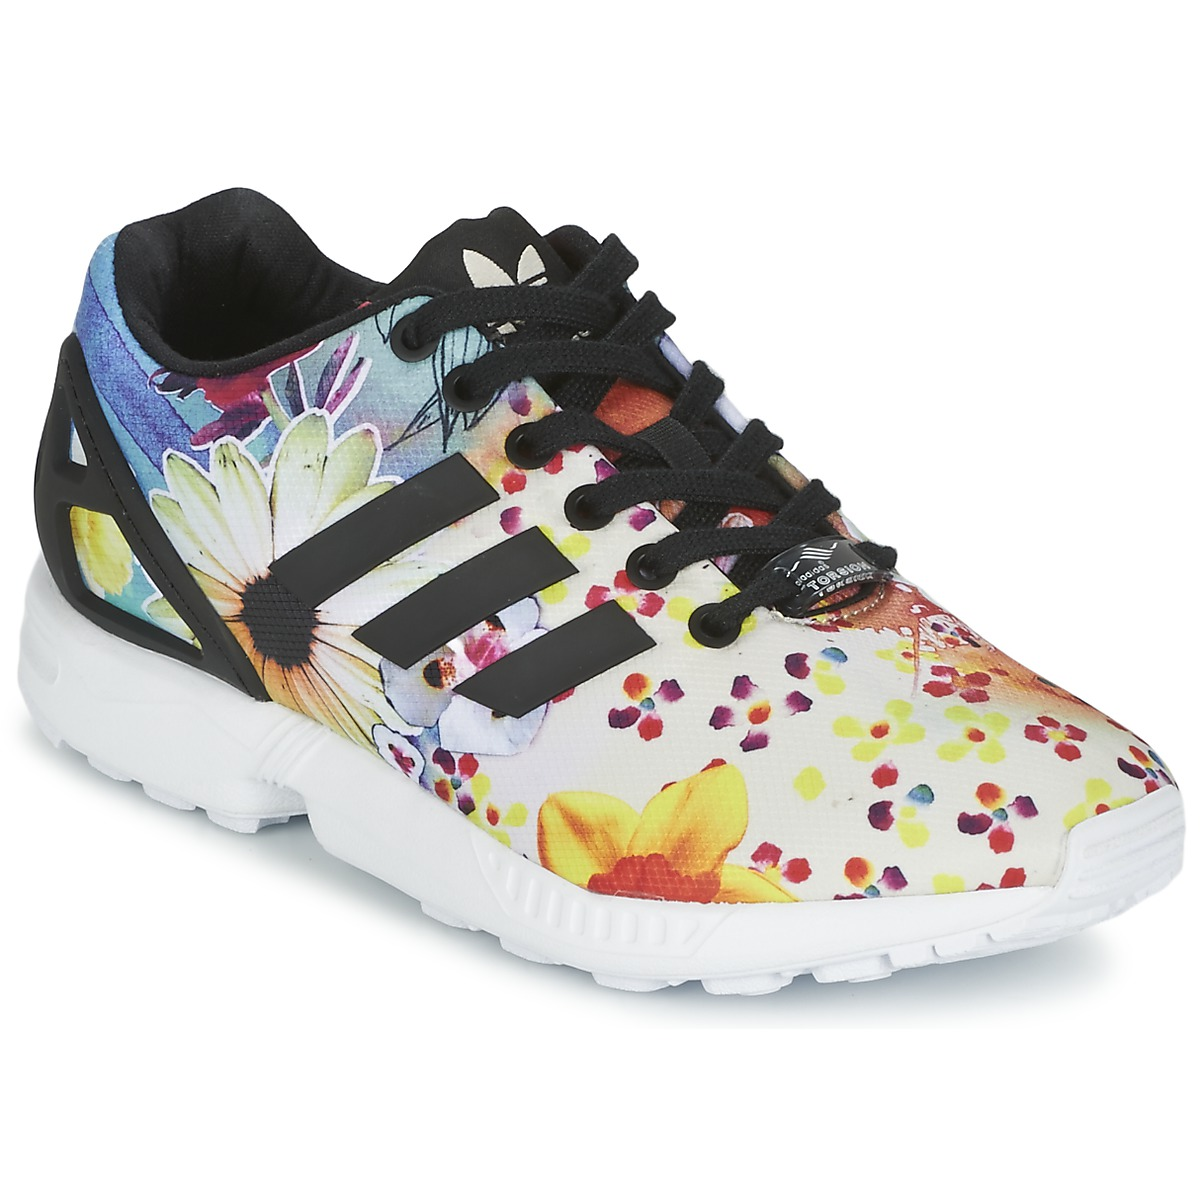 baskets adidas originals zx flux w multicolore baskets femme spartoo ventes pas. Black Bedroom Furniture Sets. Home Design Ideas